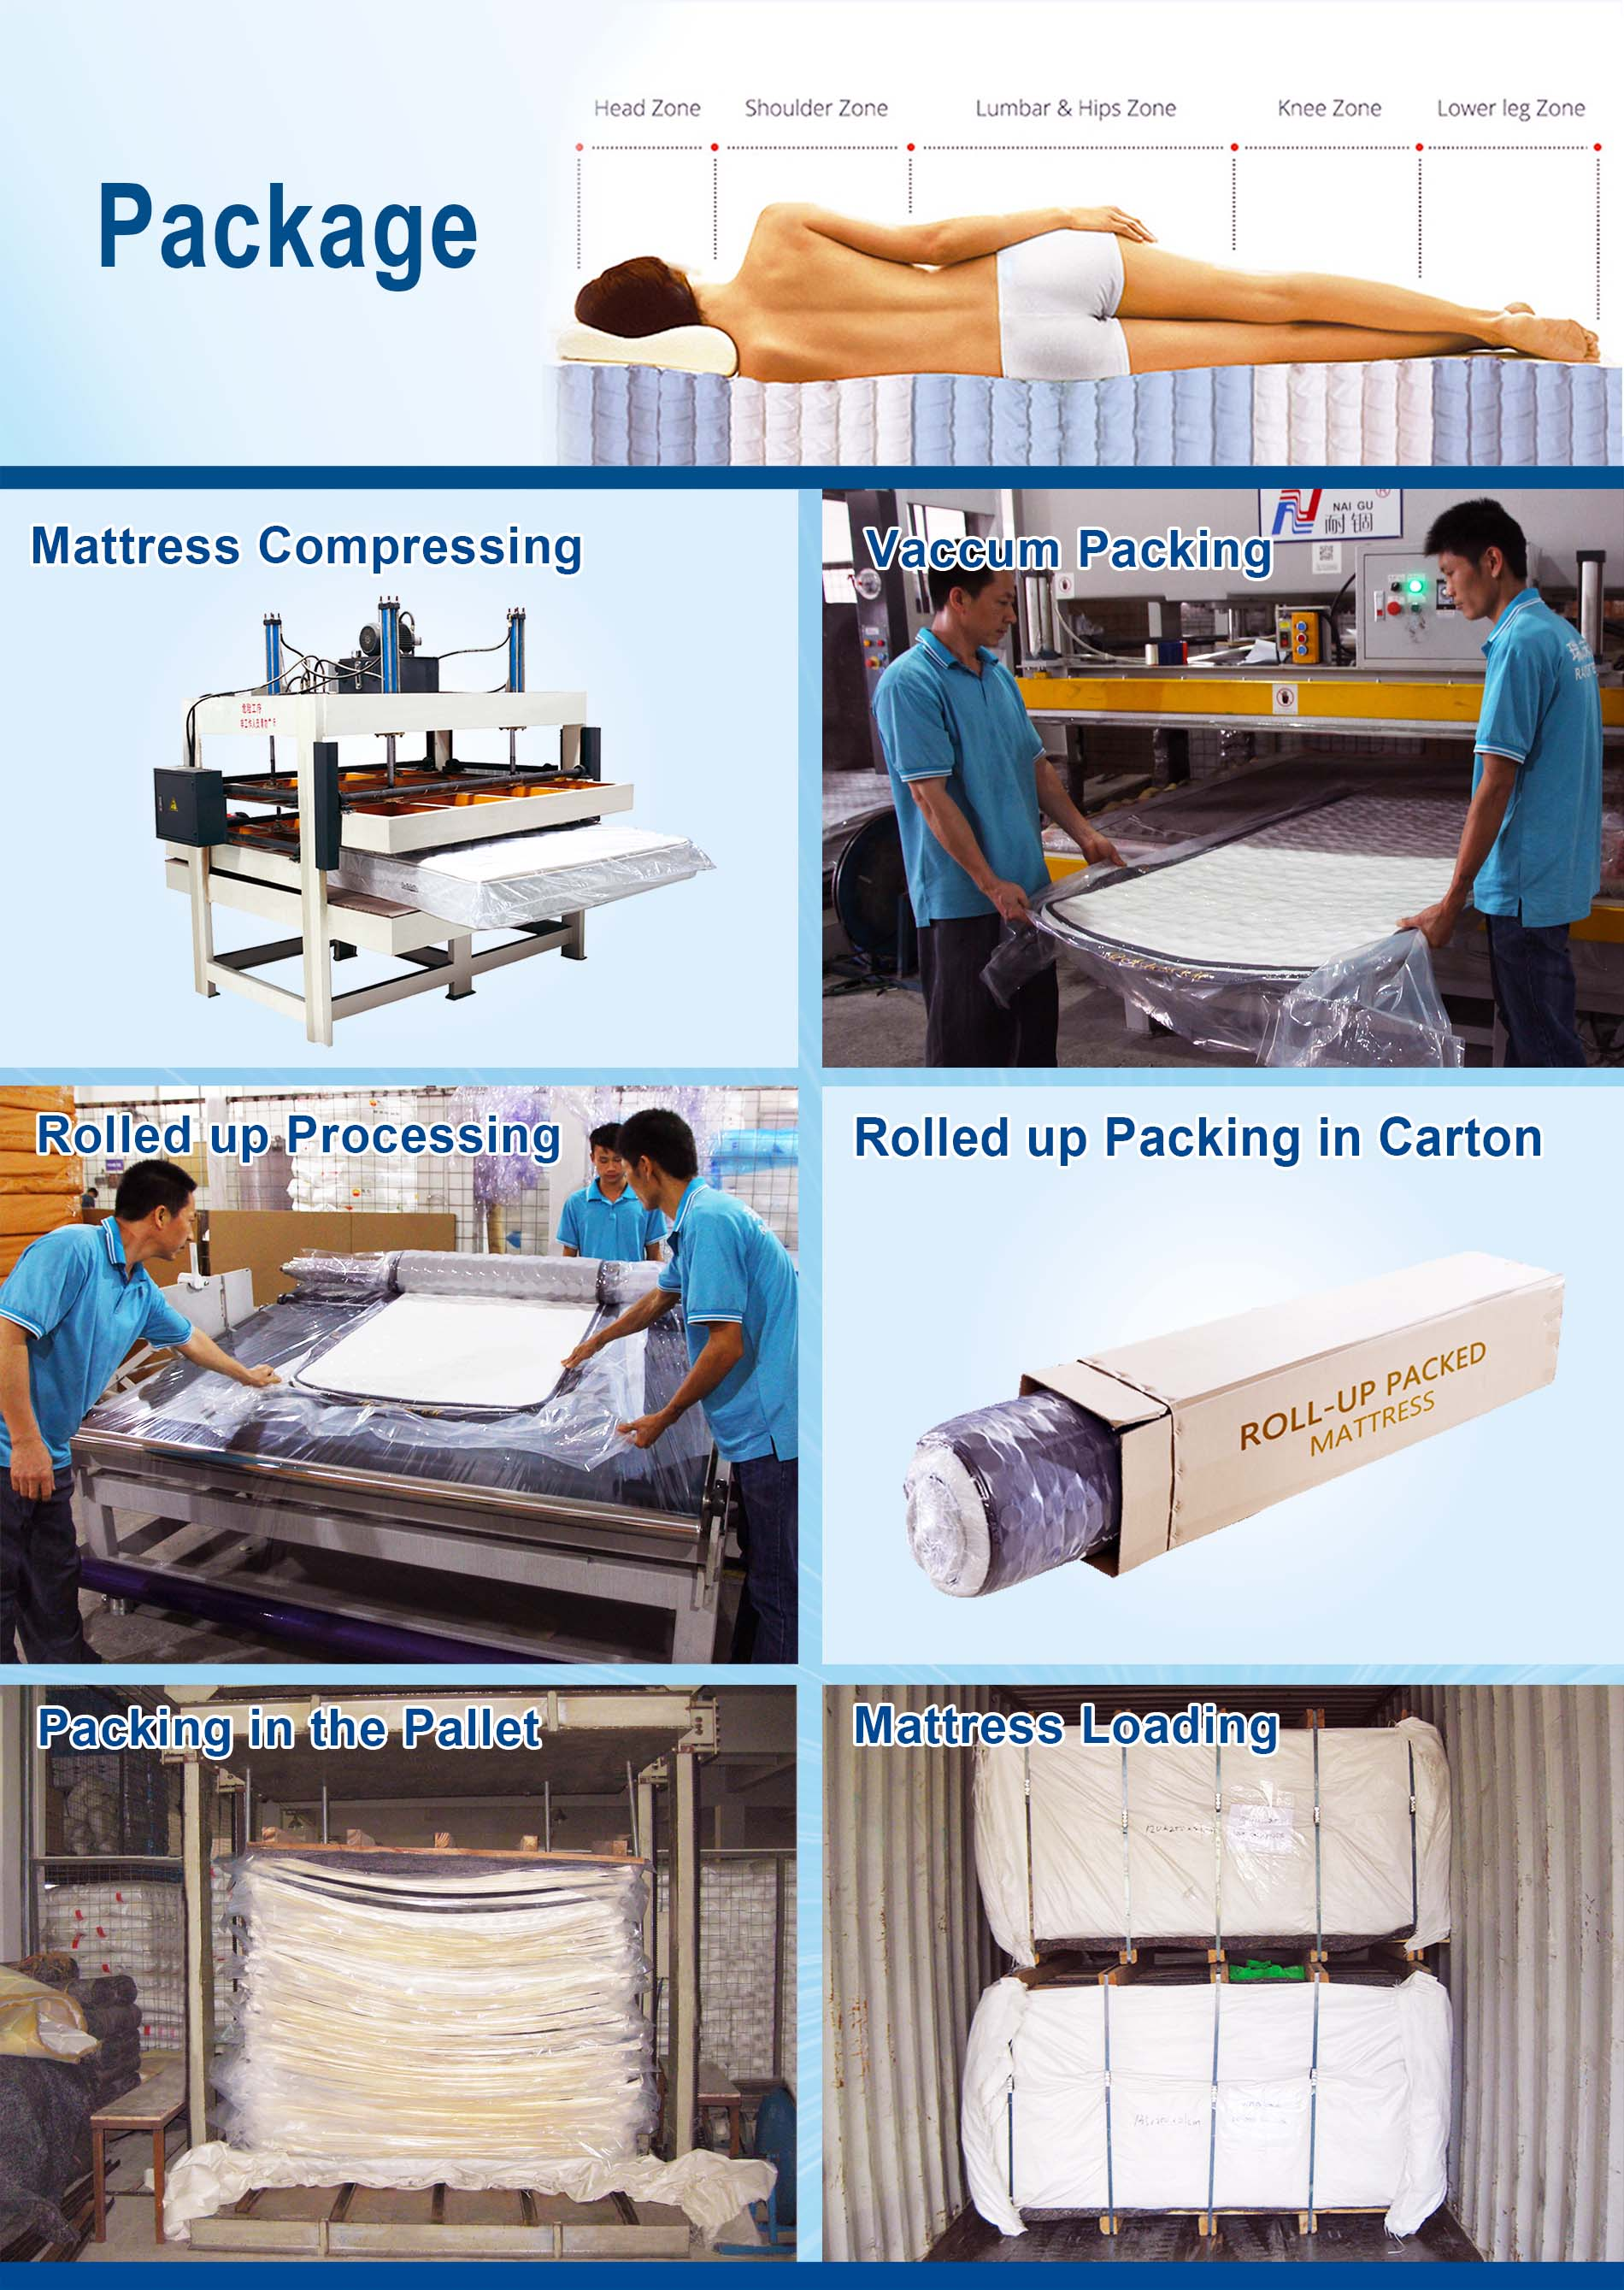 Rayson Mattress Best 5 star hotel beds for sale Suppliers-17